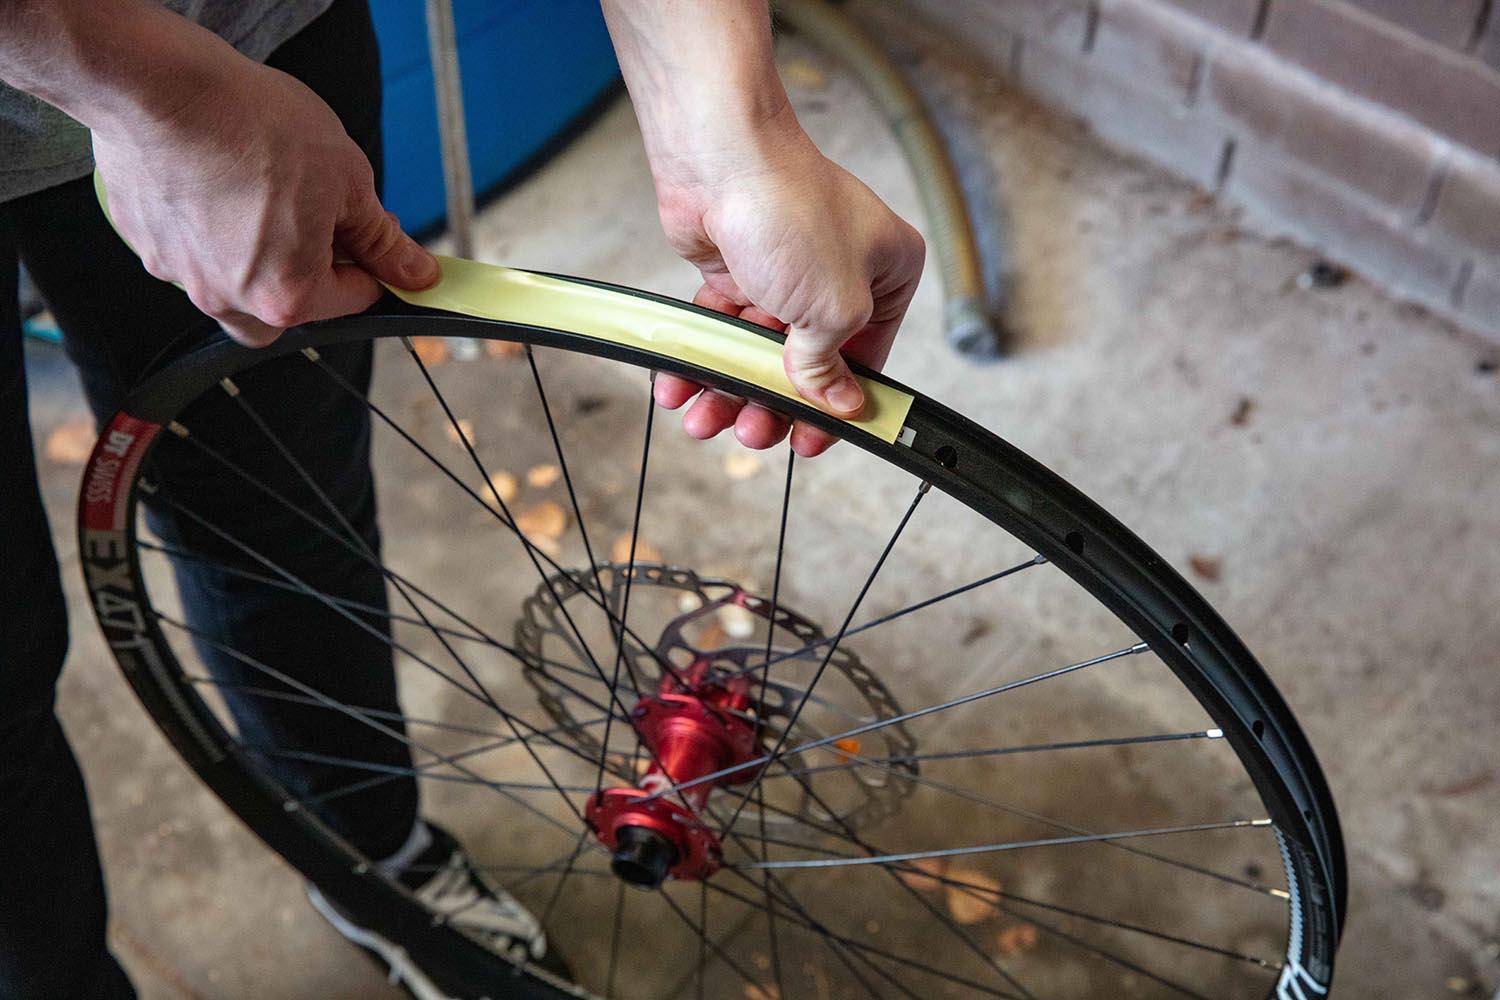 Taping a wheel rim with tubeless tape